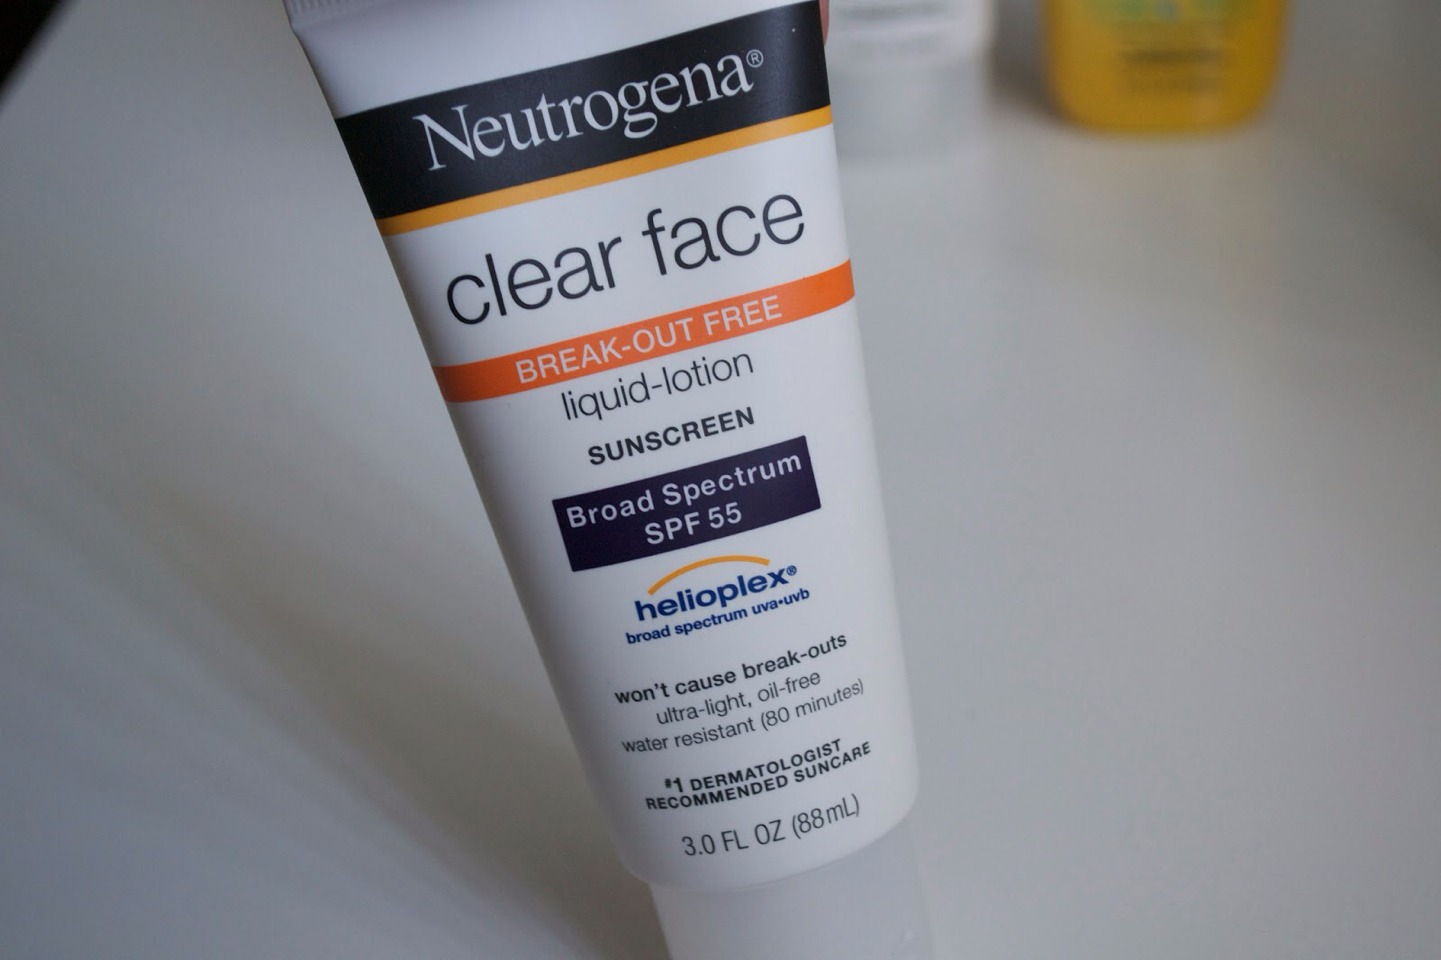 It has a high alcohol content, which helps dry up breakouts.